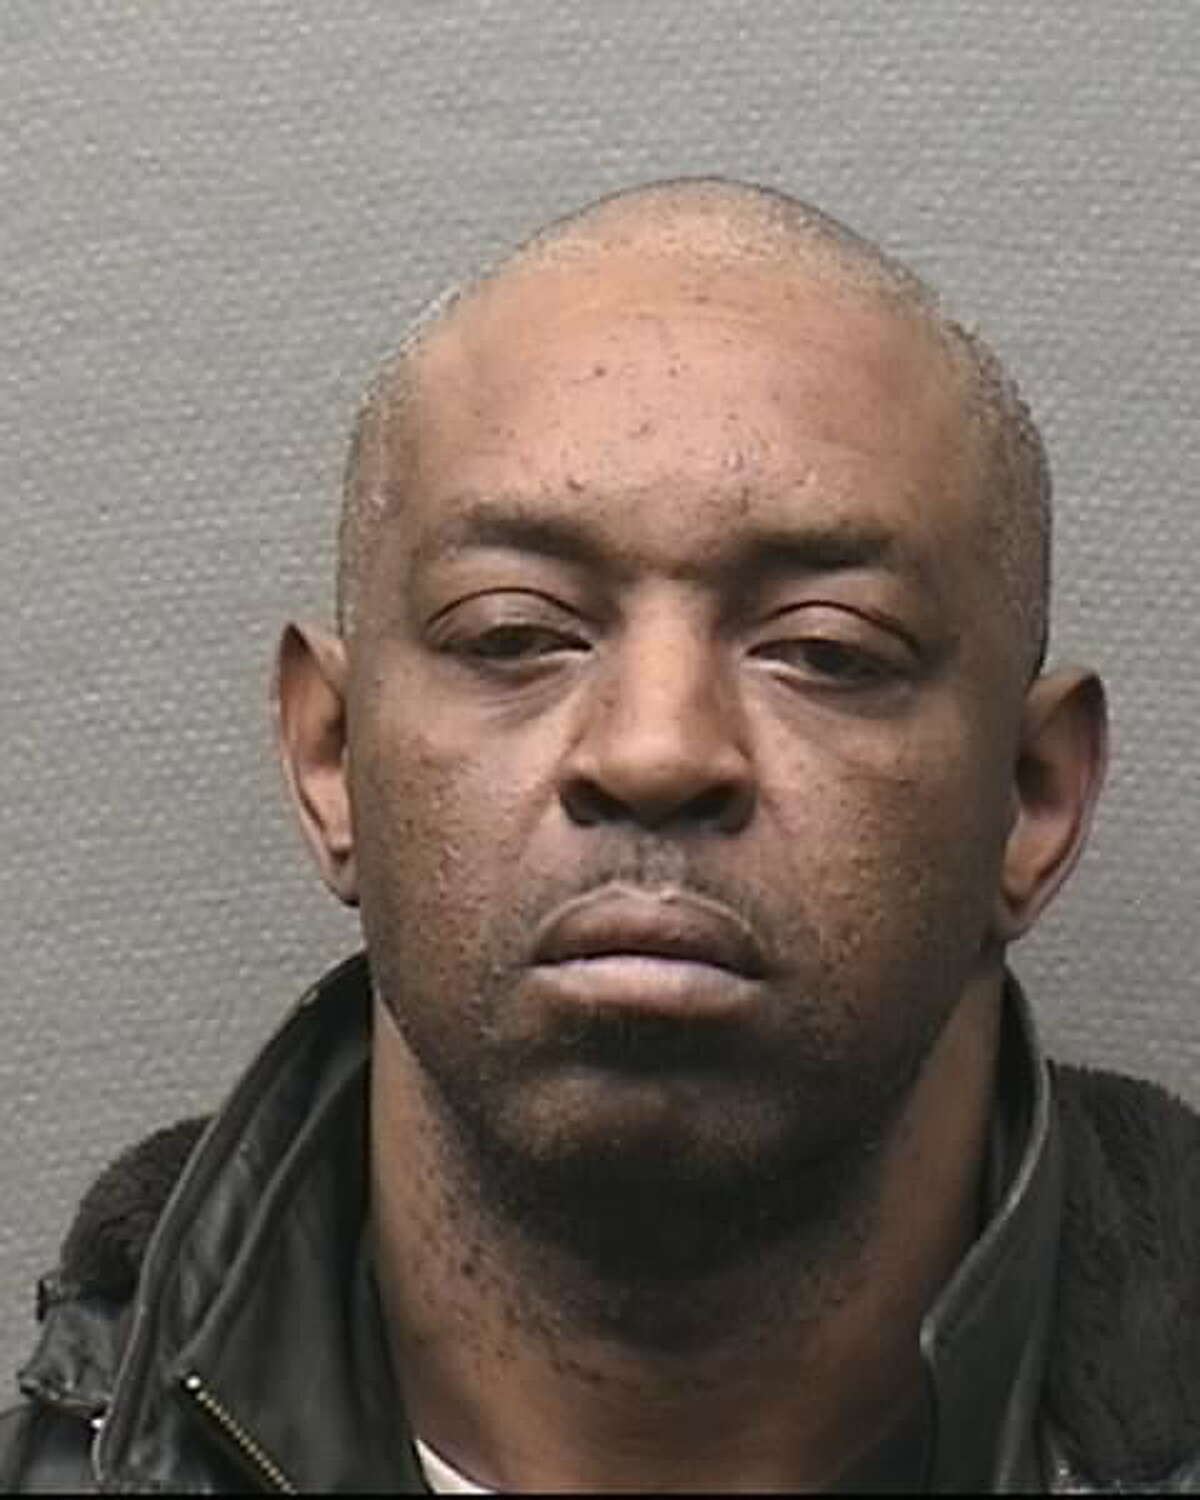 Johnny Butler, 49, of Houston, is charged with aggravated robbery with a deadly weapon. Photo: Houston Police Department.